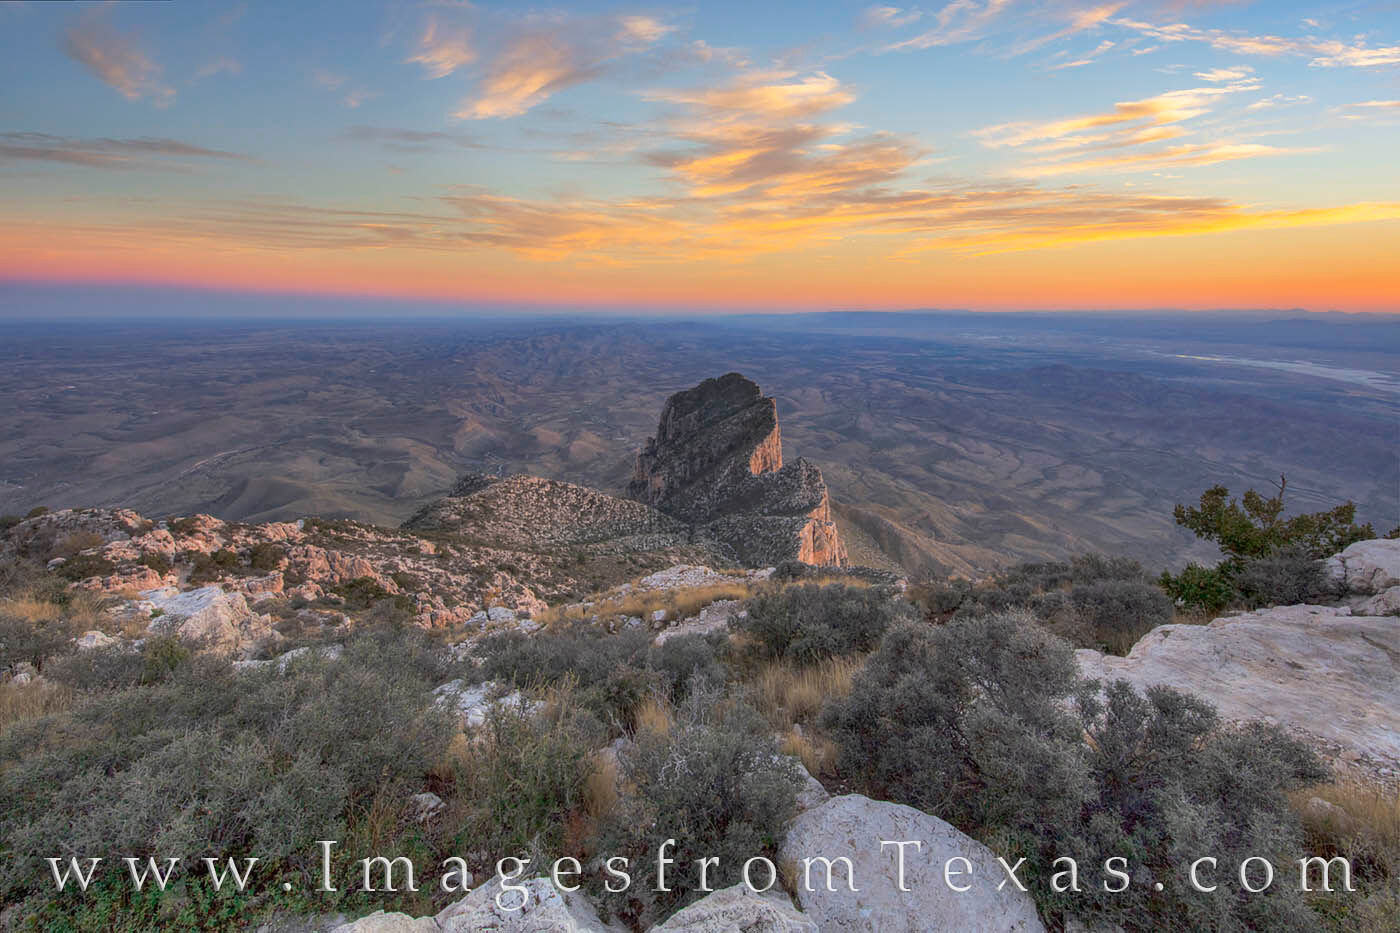 Guadalupe Mountains, Guadalupe Mountains National Park, El Capitan, Guadalupe Peak, west texas, chihuahuan desert, tallest point in texas, texas landmarks, texas icons, texas landscapes, texas nationa, photo